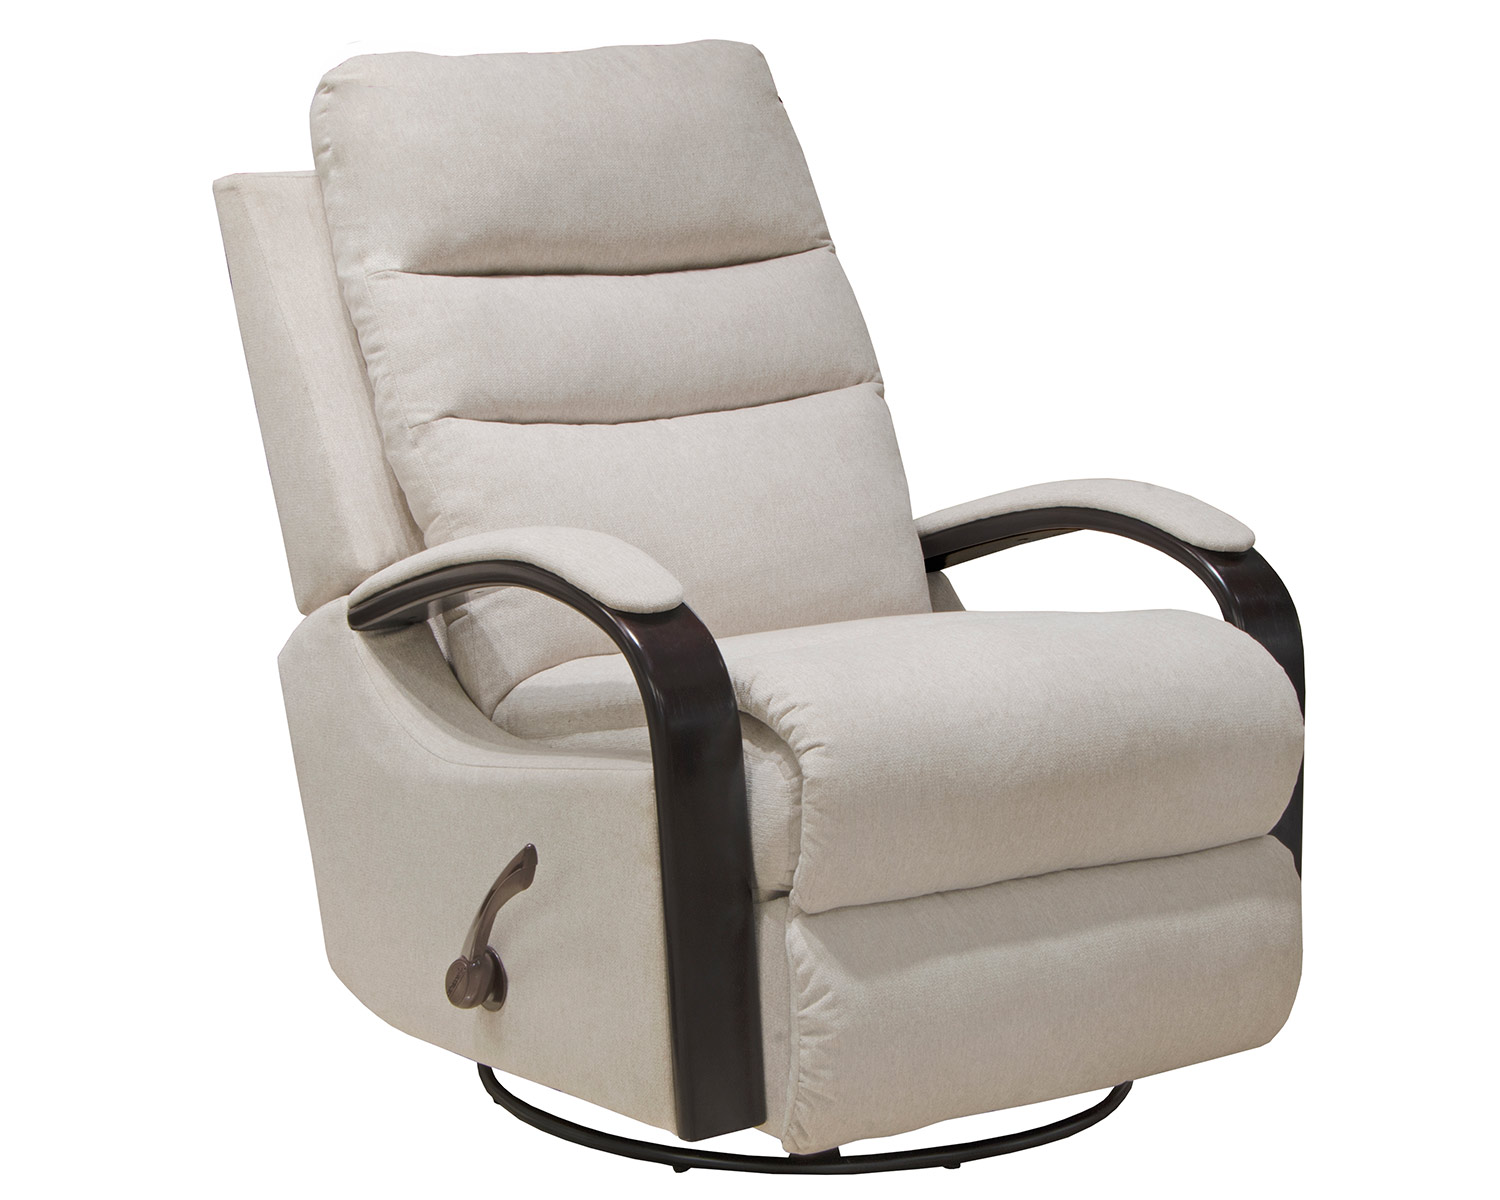 CatNapper Jansen Swivel Glider Recliner Chair - Shell